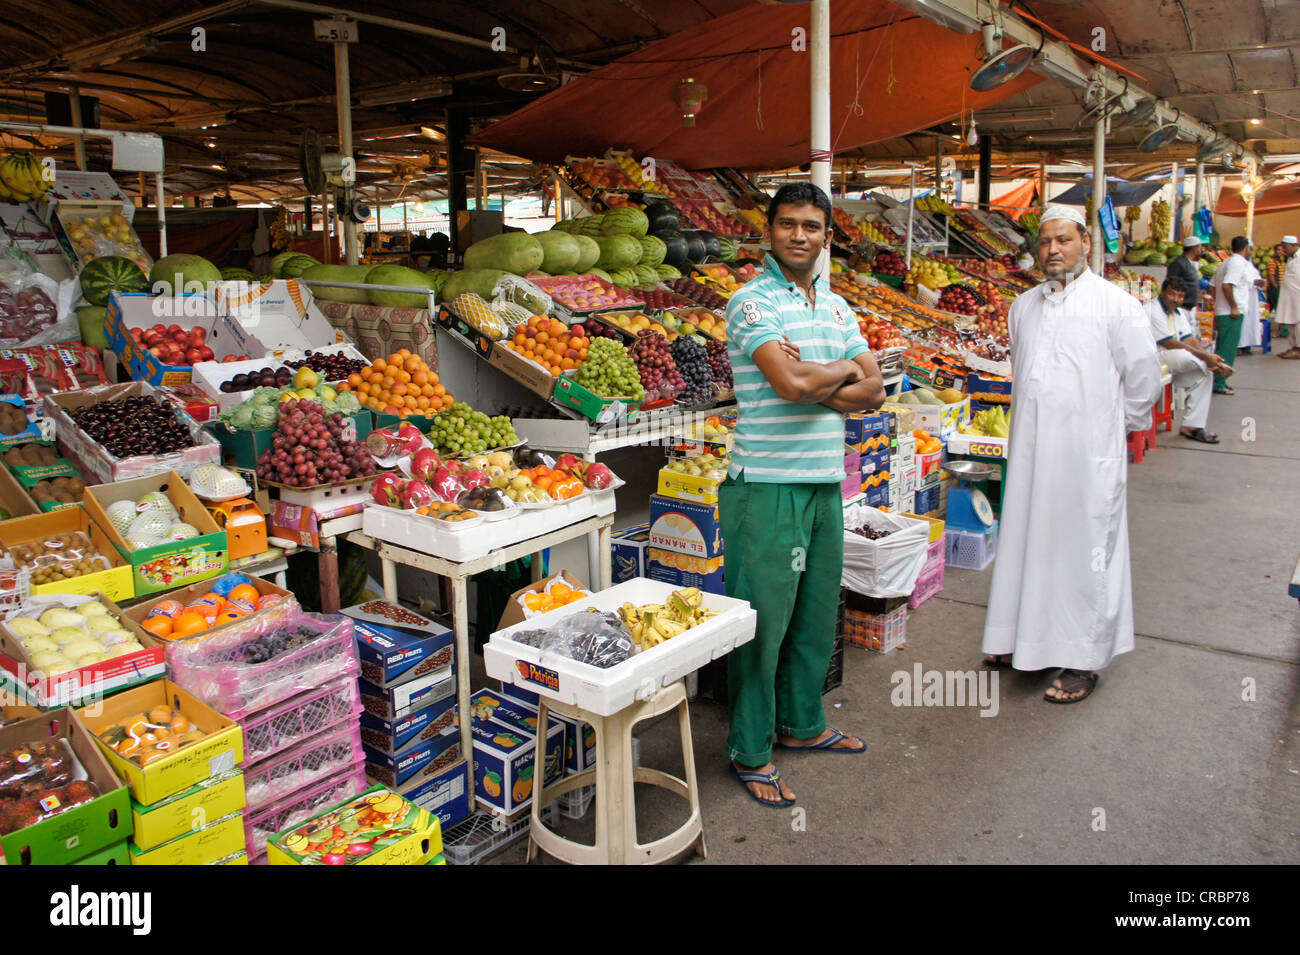 Dealers with fruit and vegetables at the market in Dubai, United Arab Emirates, Middle East, Asia - Stock Image